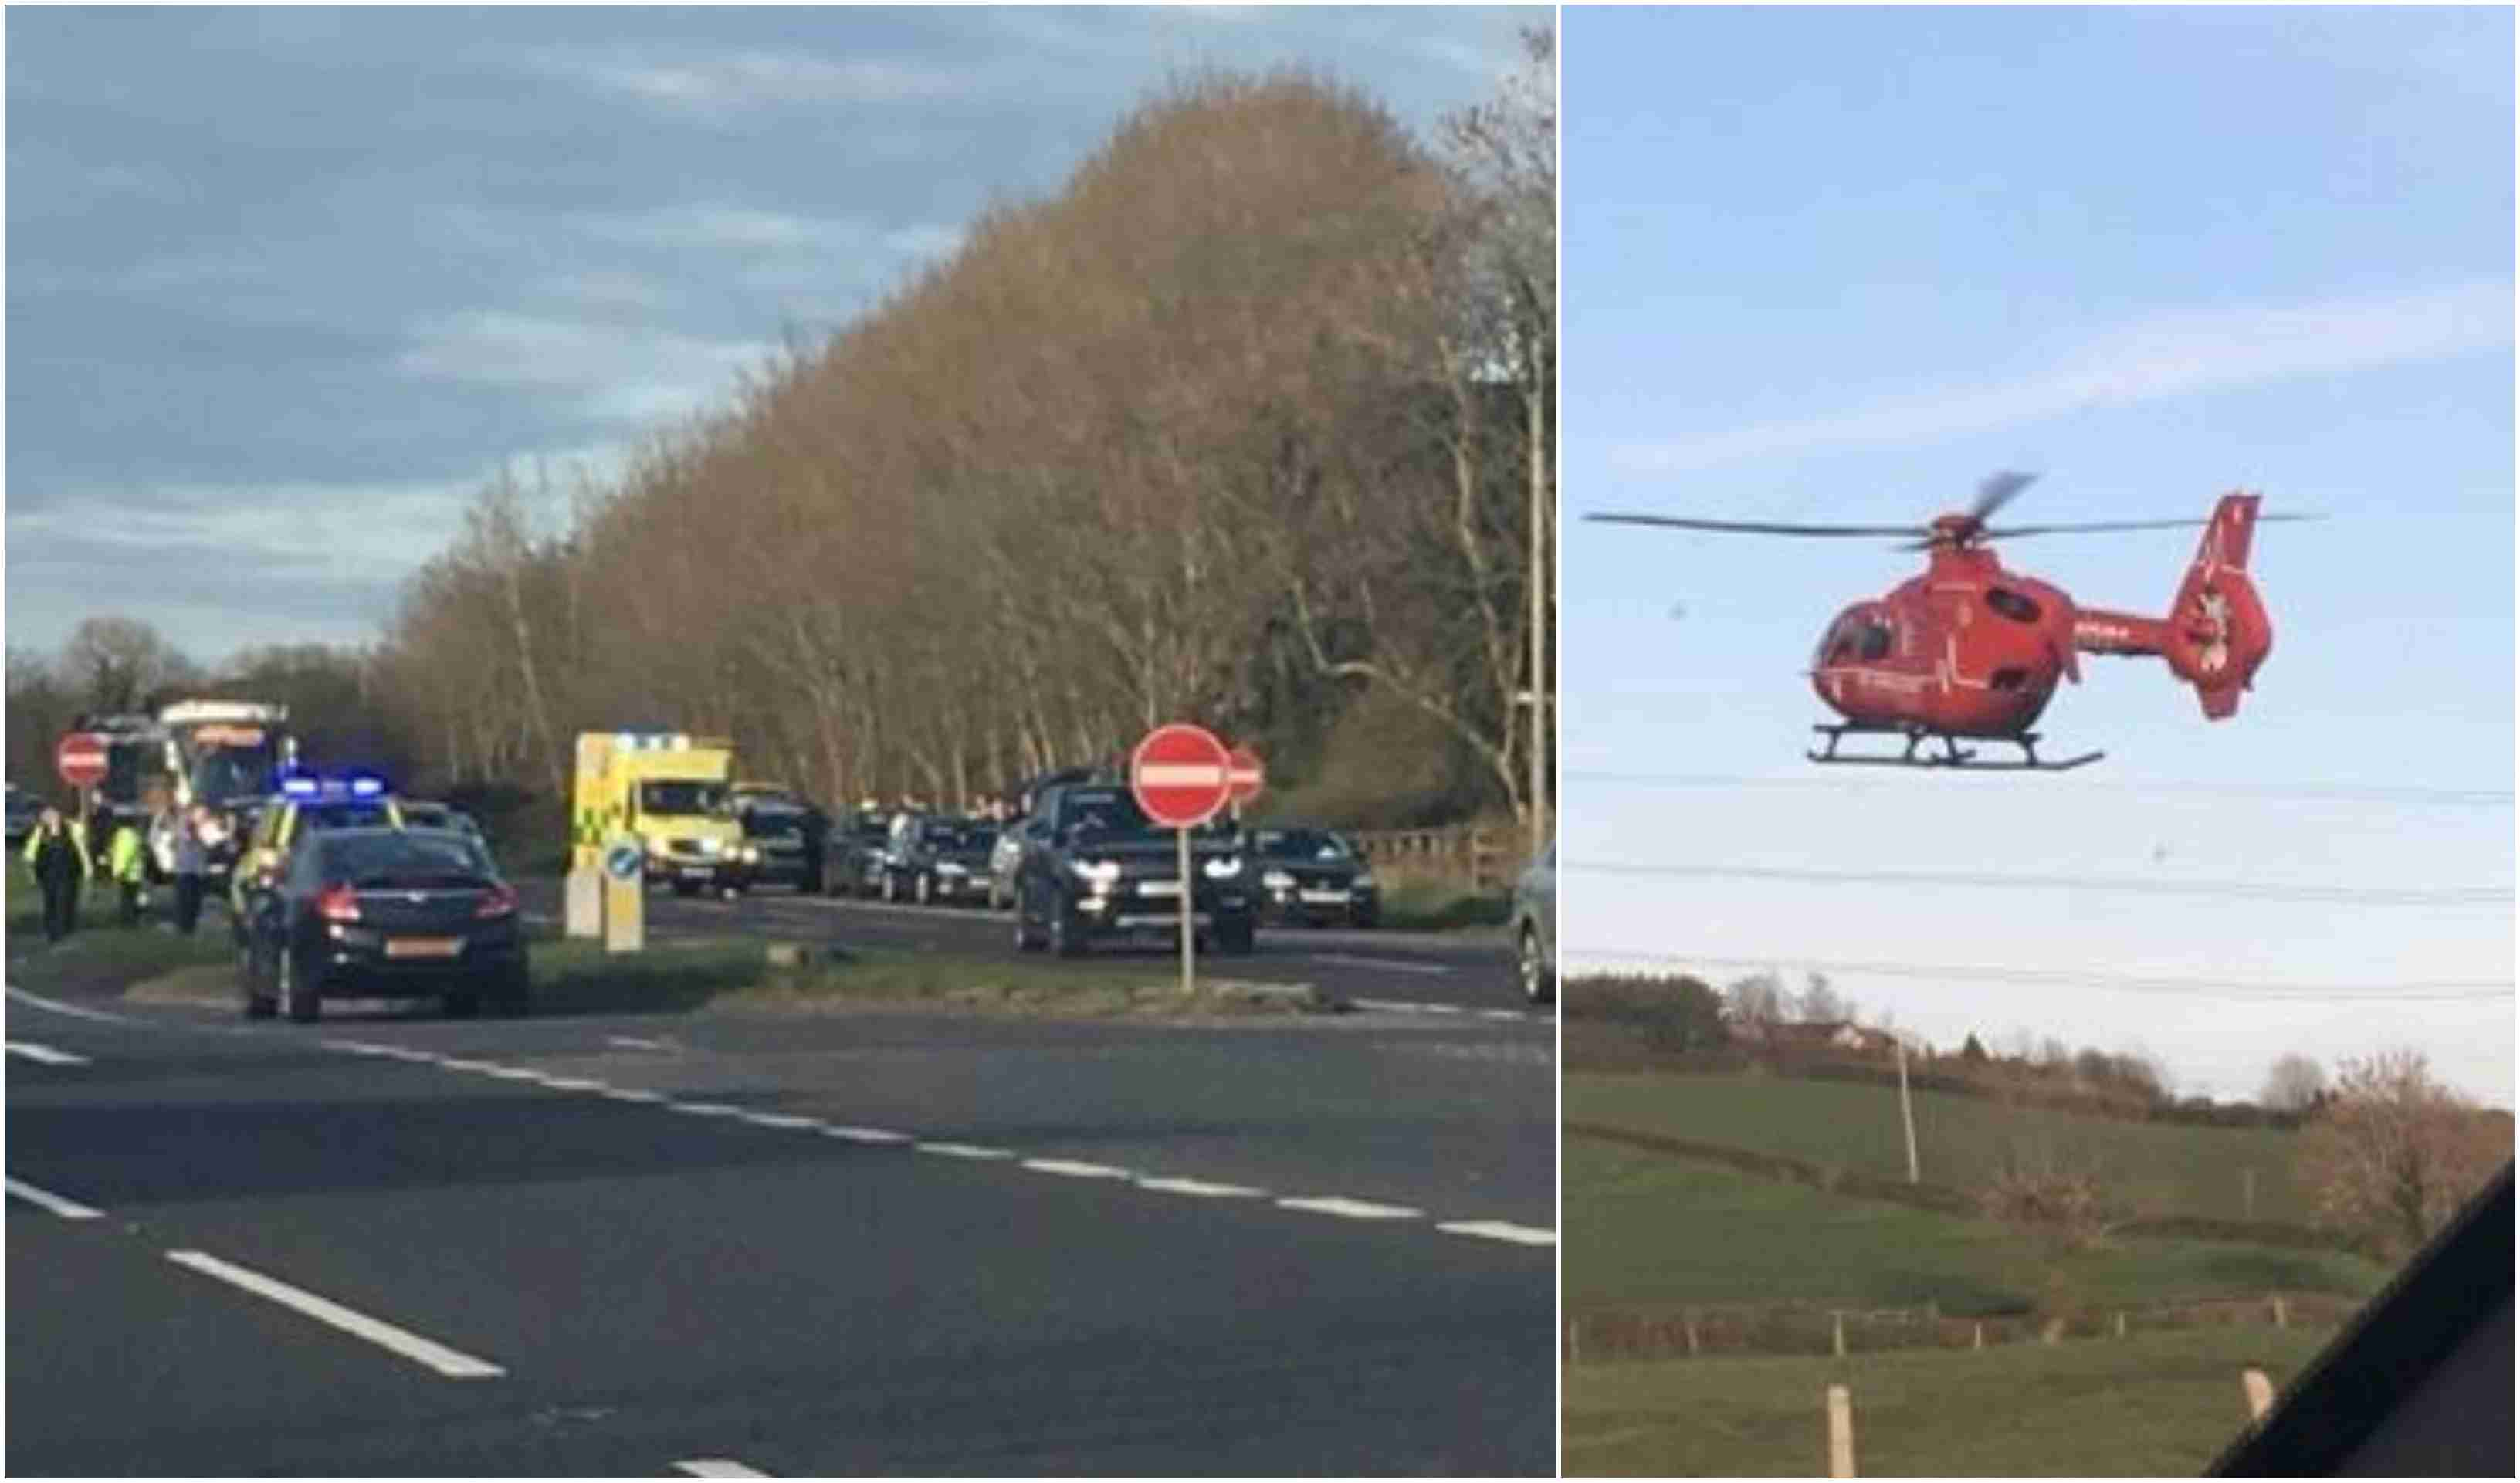 Air Ambulance RTC A1